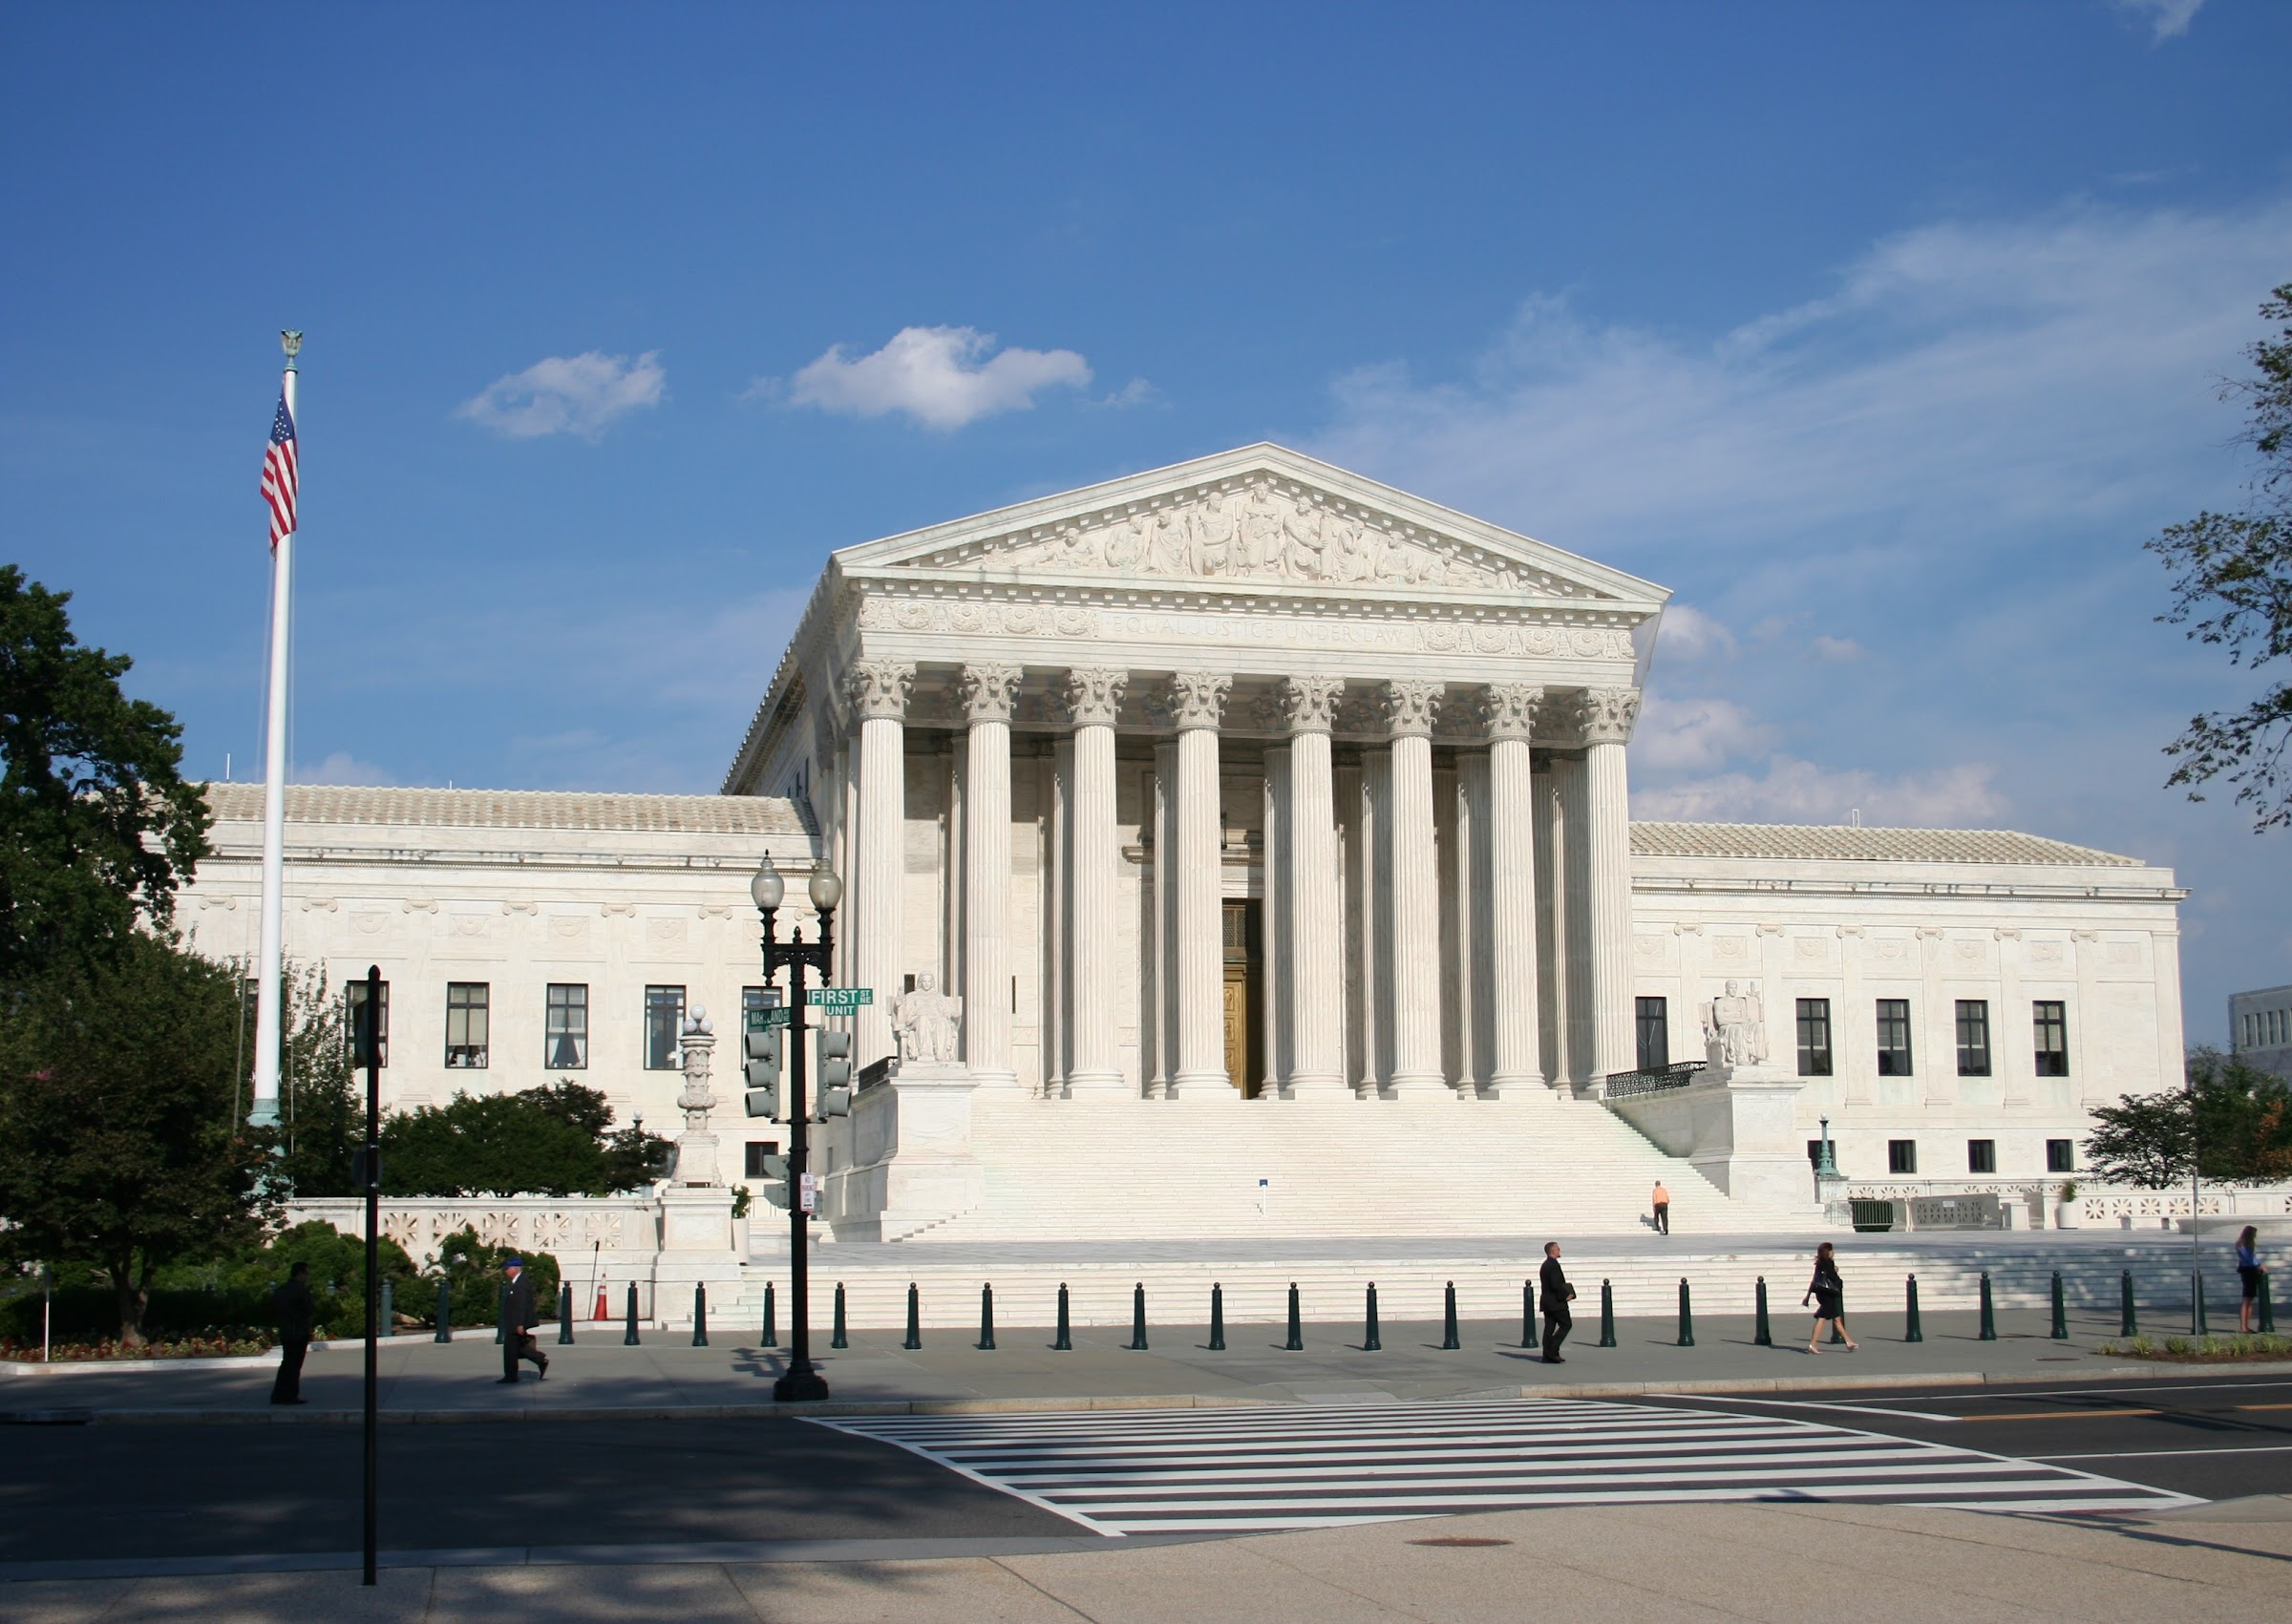 Patrick Buchanan: Will there be a Trump Supreme Court?